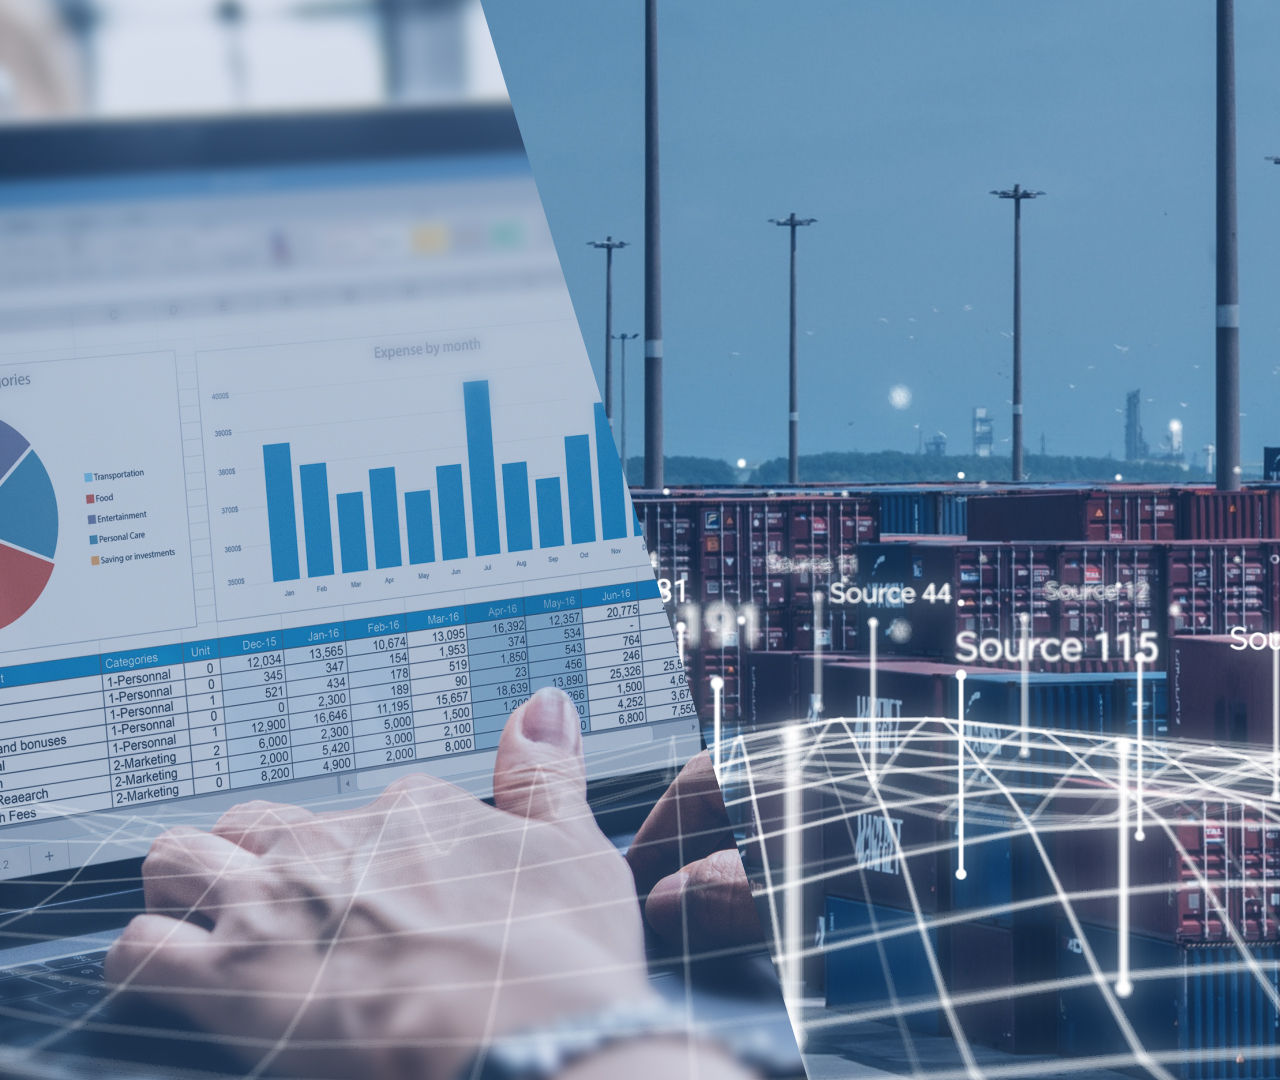 How To Move From An Analog To A Digitized Supply Chain